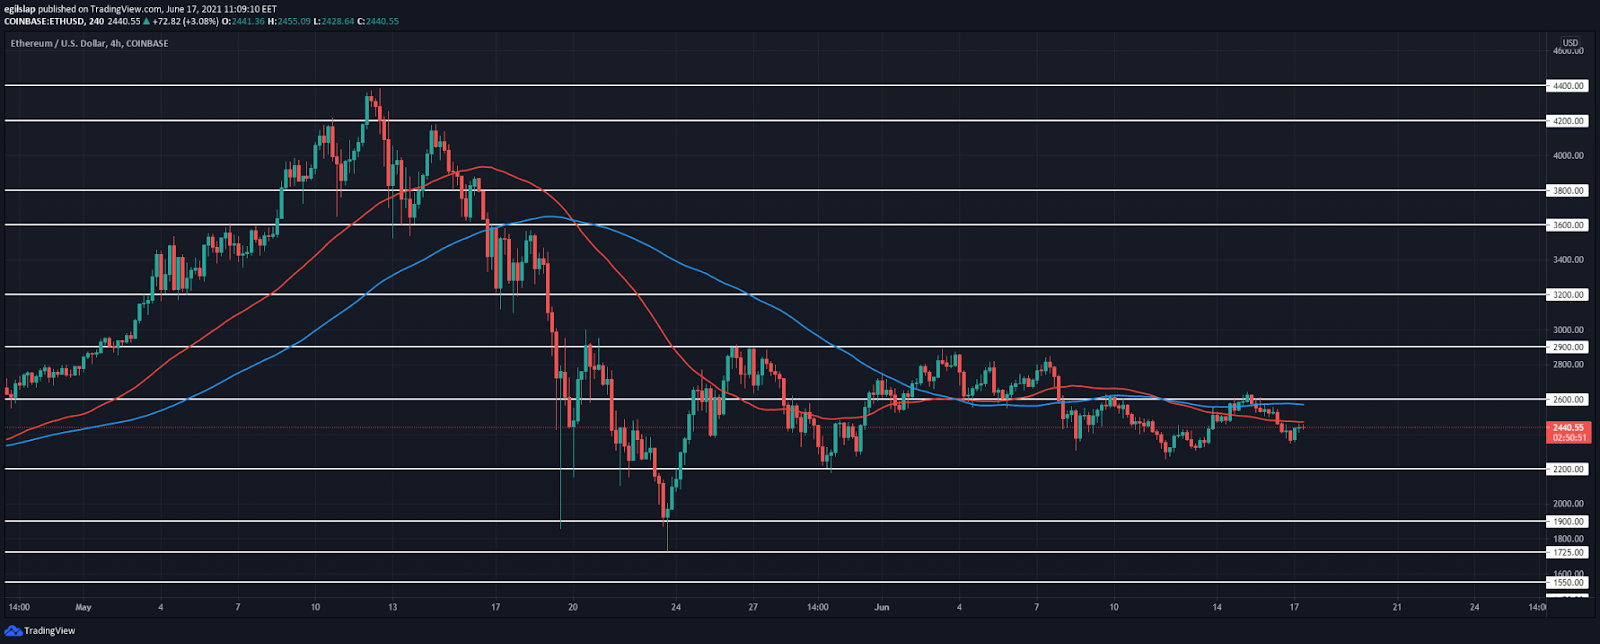 Ethereum price analysis: Ethereum establishes a higher low at $2,350, prepares to spike higher? 2